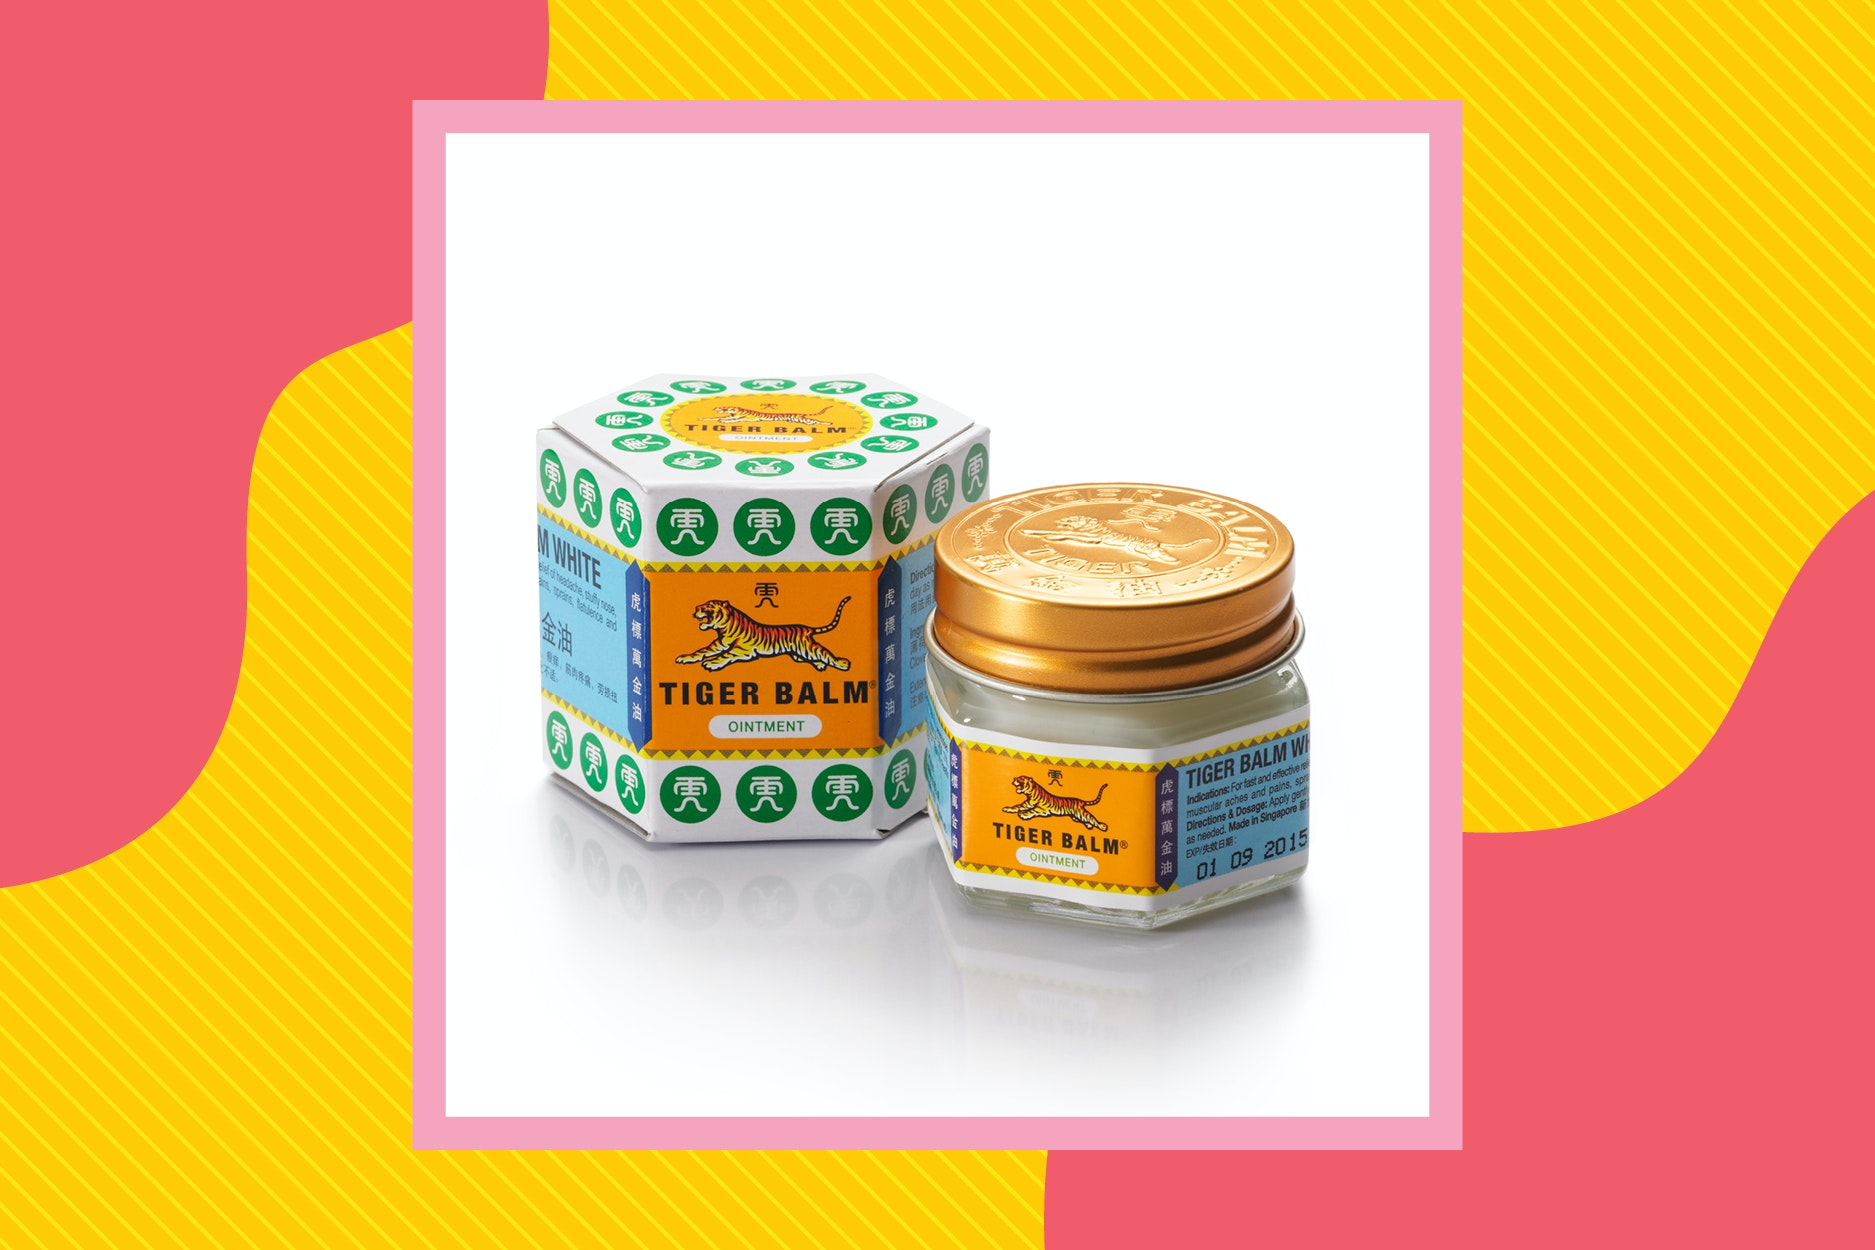 Tiger Balm can relieve itching from mosquito bites.